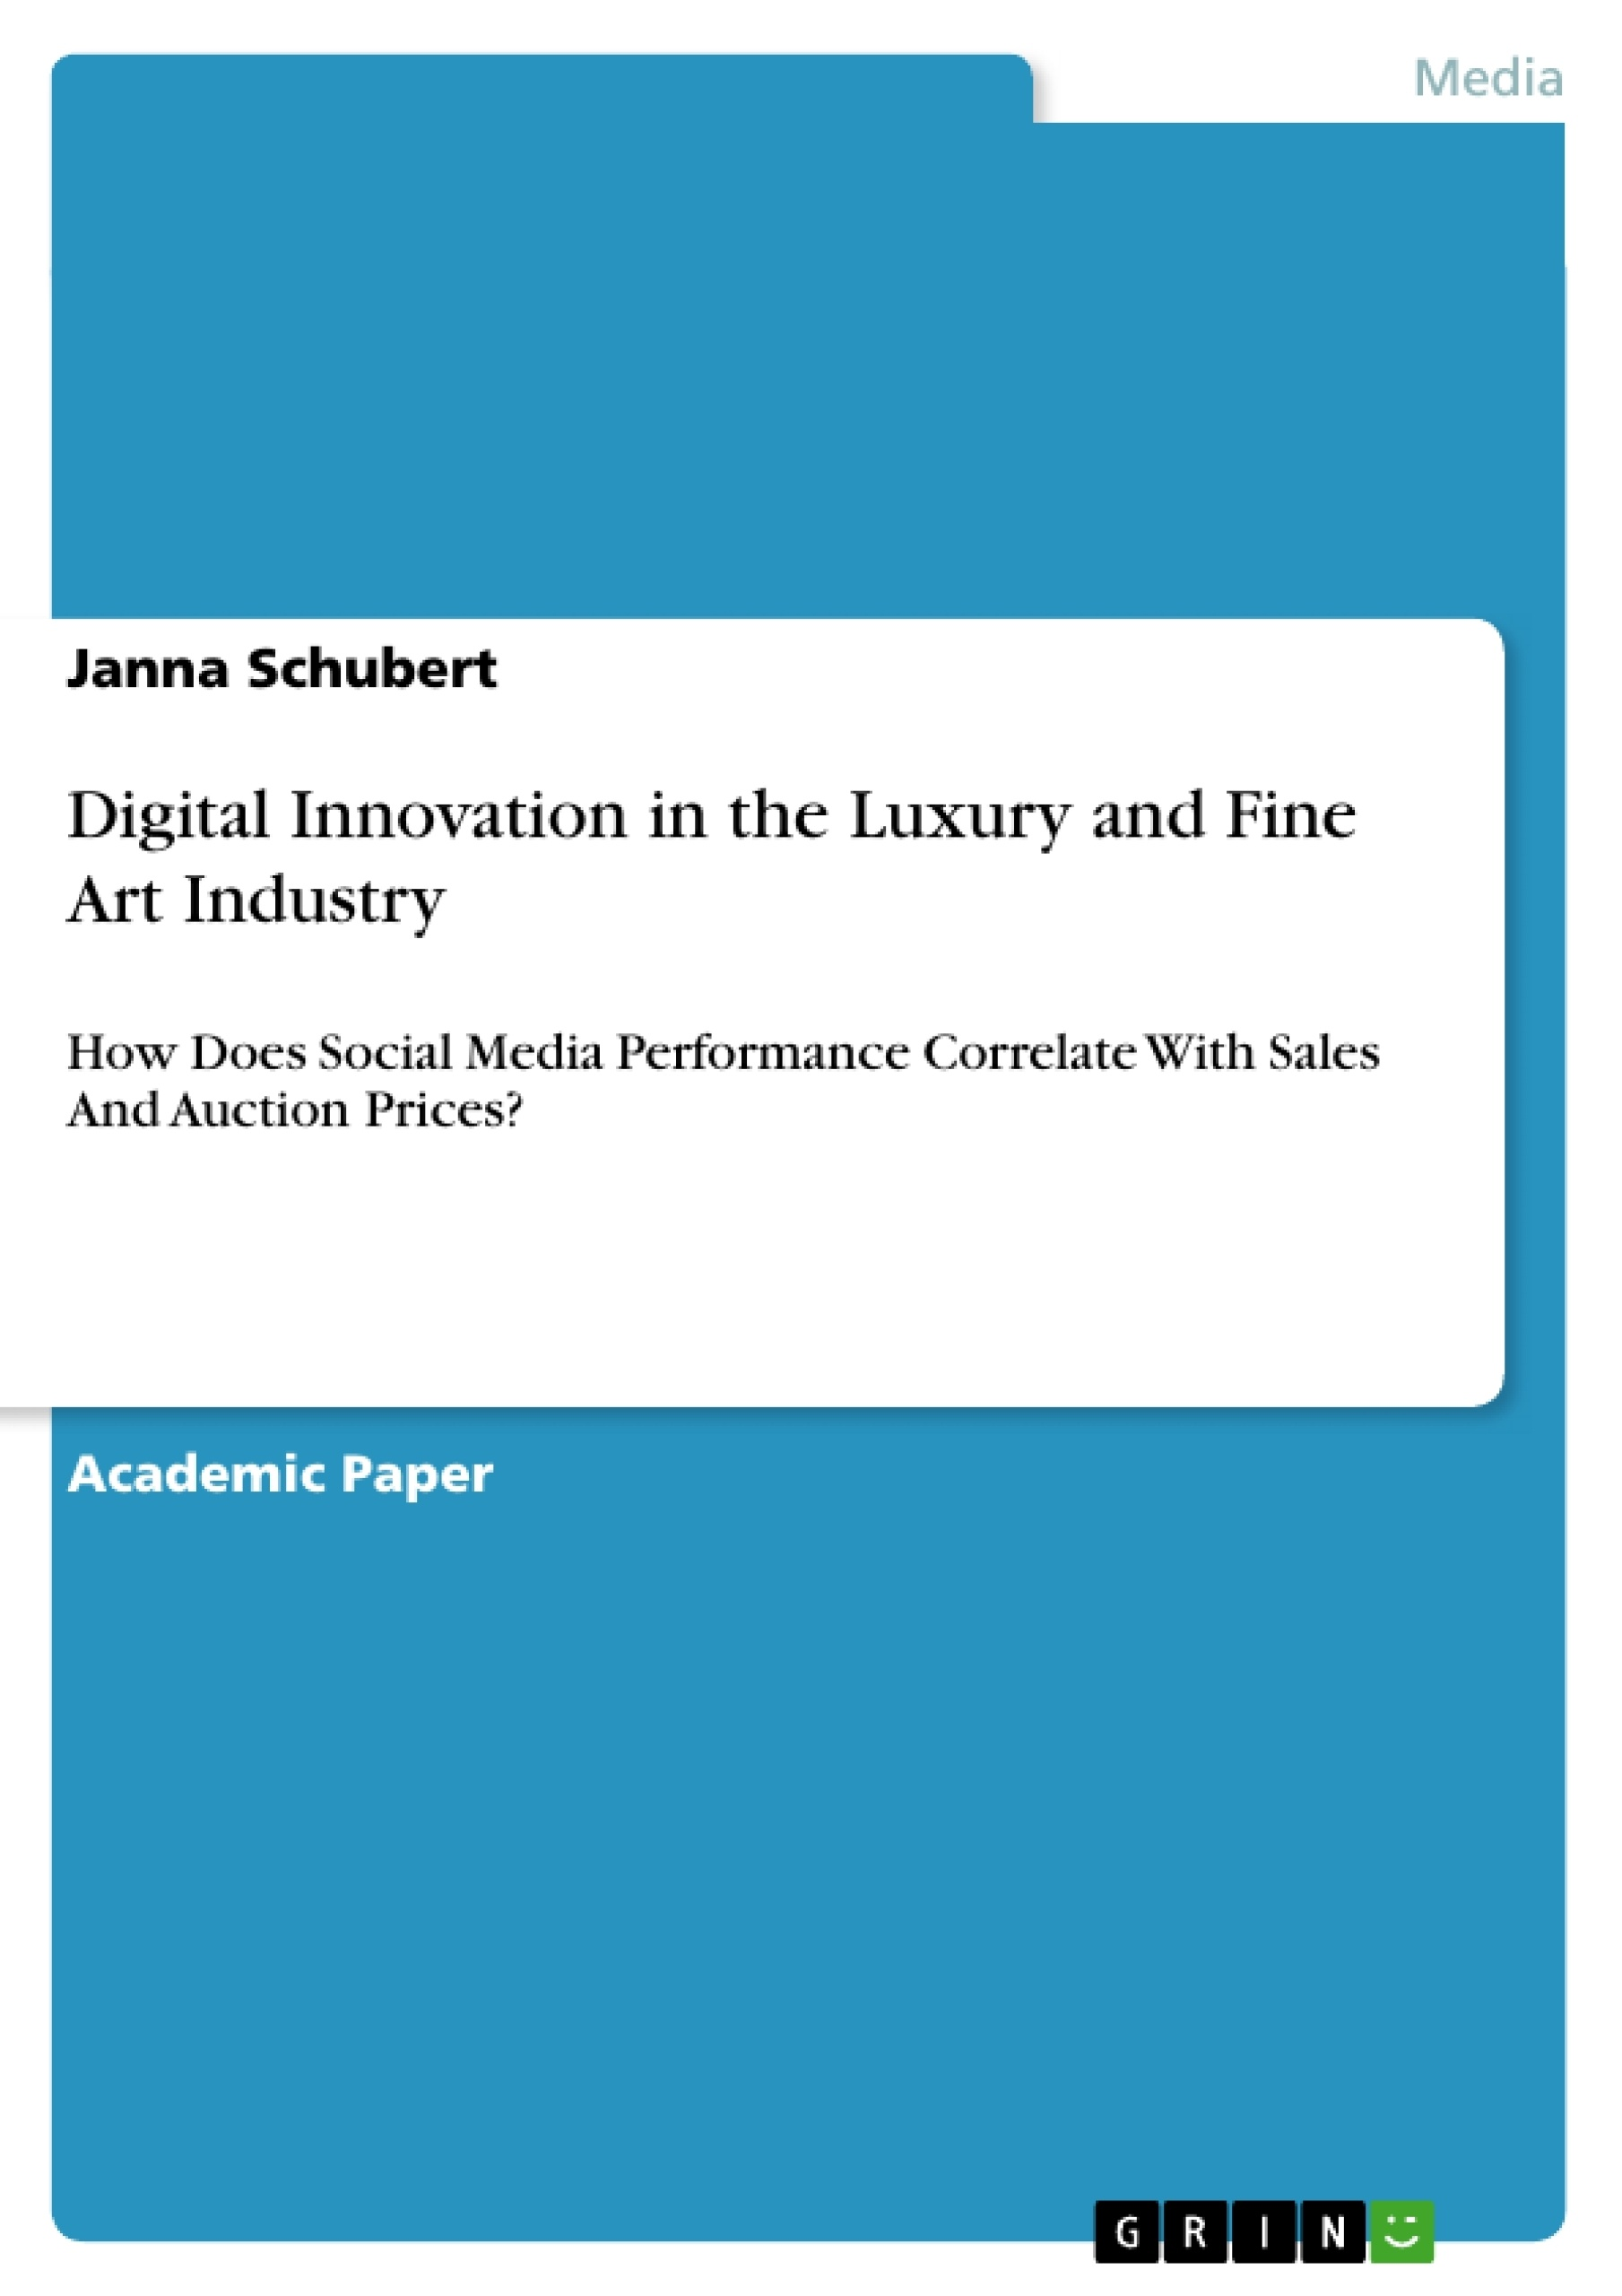 Title: Digital Innovation in the Luxury and Fine Art Industry